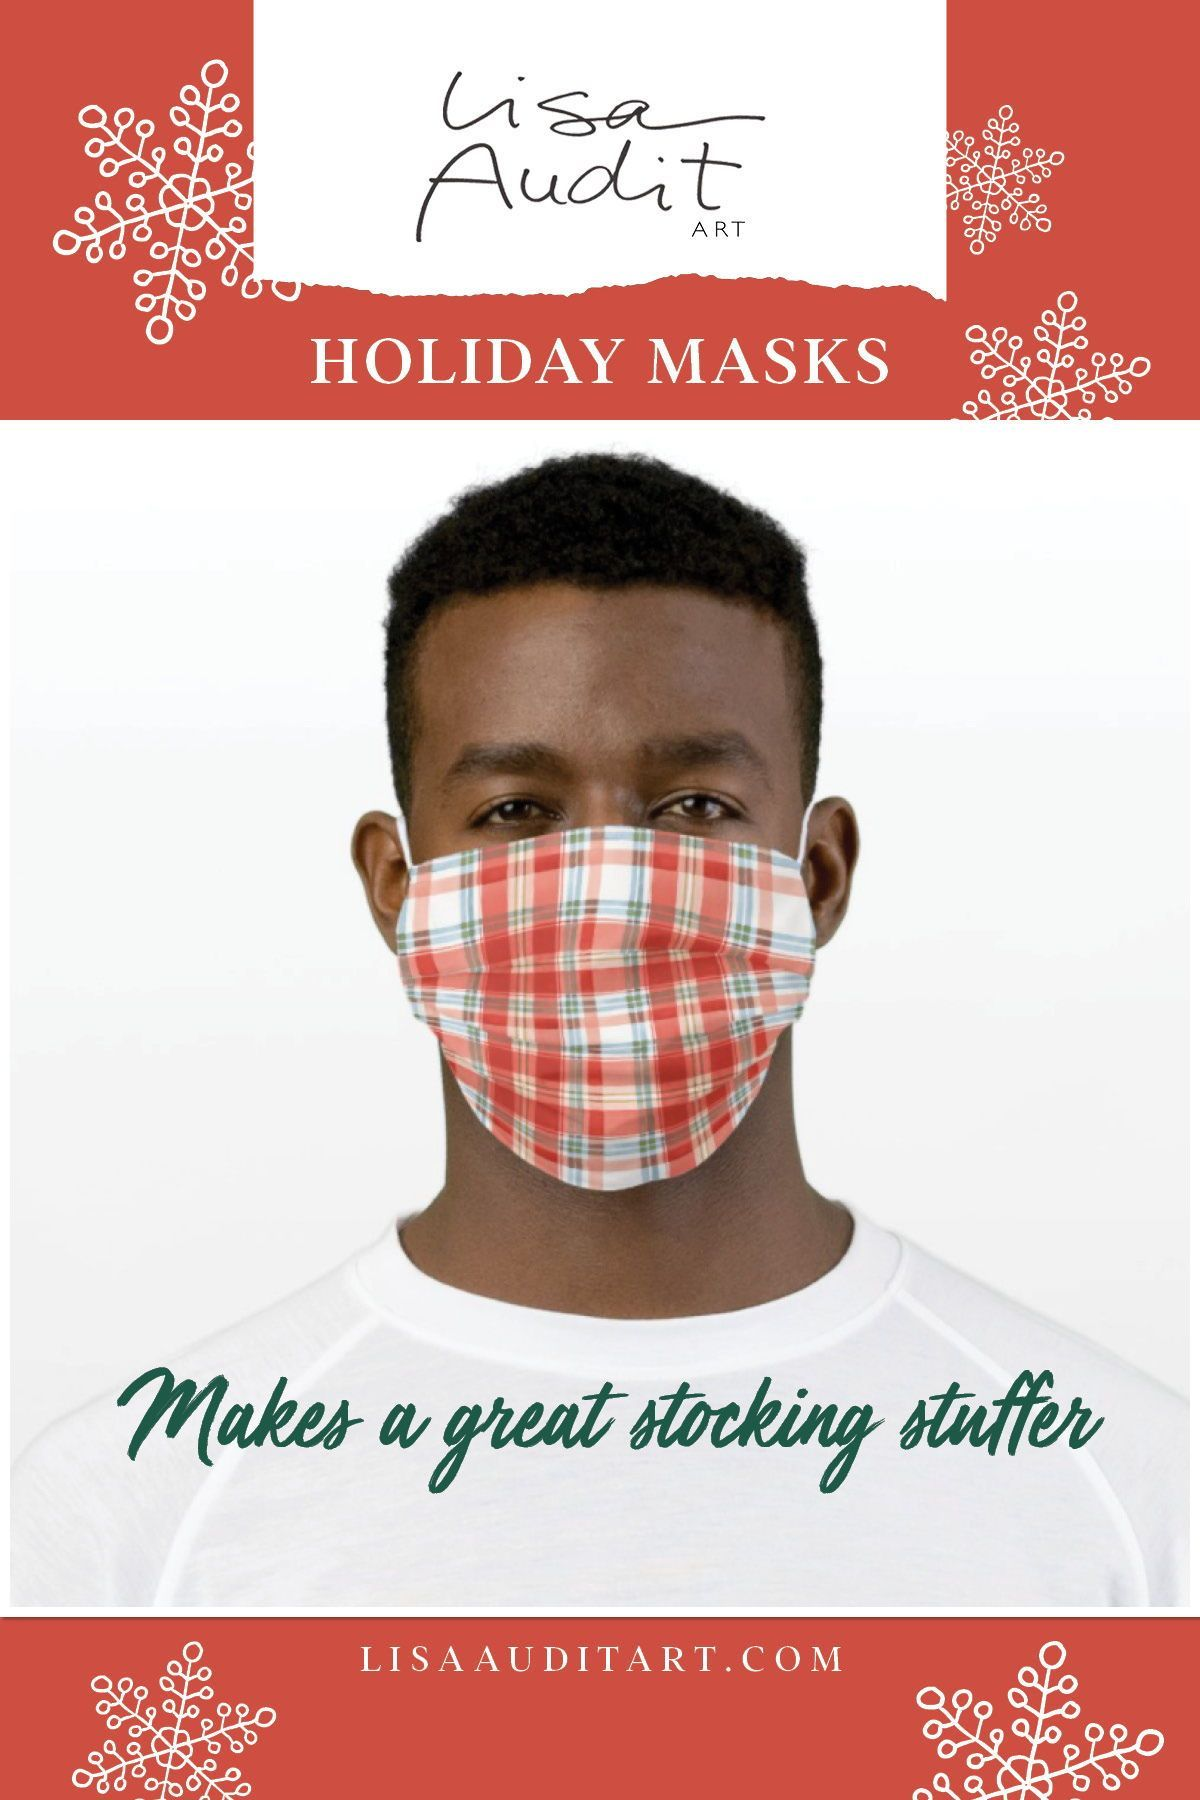 A festive red, white, and blue face mask to bring a smile to you and those around you this holiday season. Plus it is the perfect stocking stuffer! #christmasplaid #facemask #christmasmask #festivemask #stockingstuffer #christmas #safechristmas